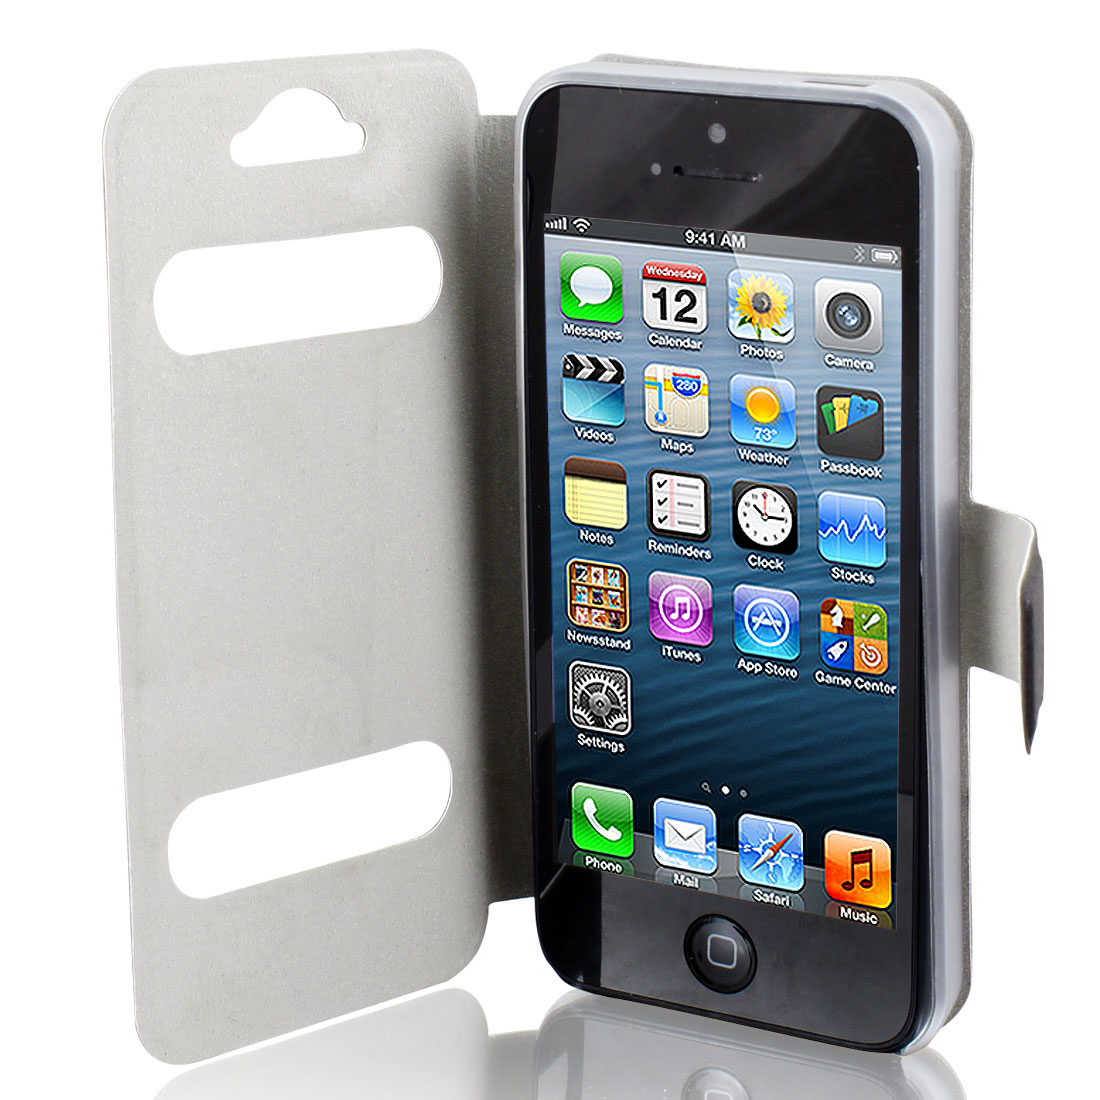 Solid Black Faux Leather Protective Flip Cover Pouch Wallet for iPhone 5 5G 5GS